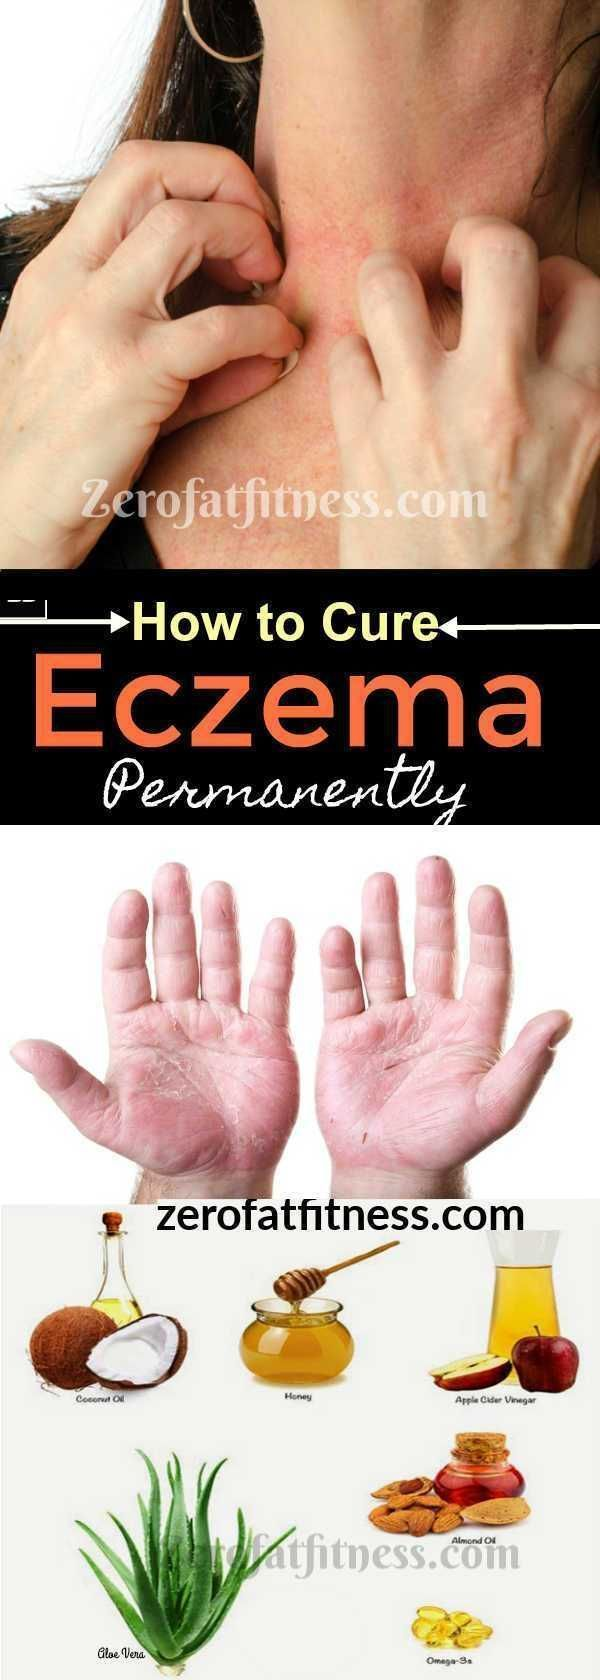 12 Best Home Remedies to Get Rid of Eczema Fast and Permanently -